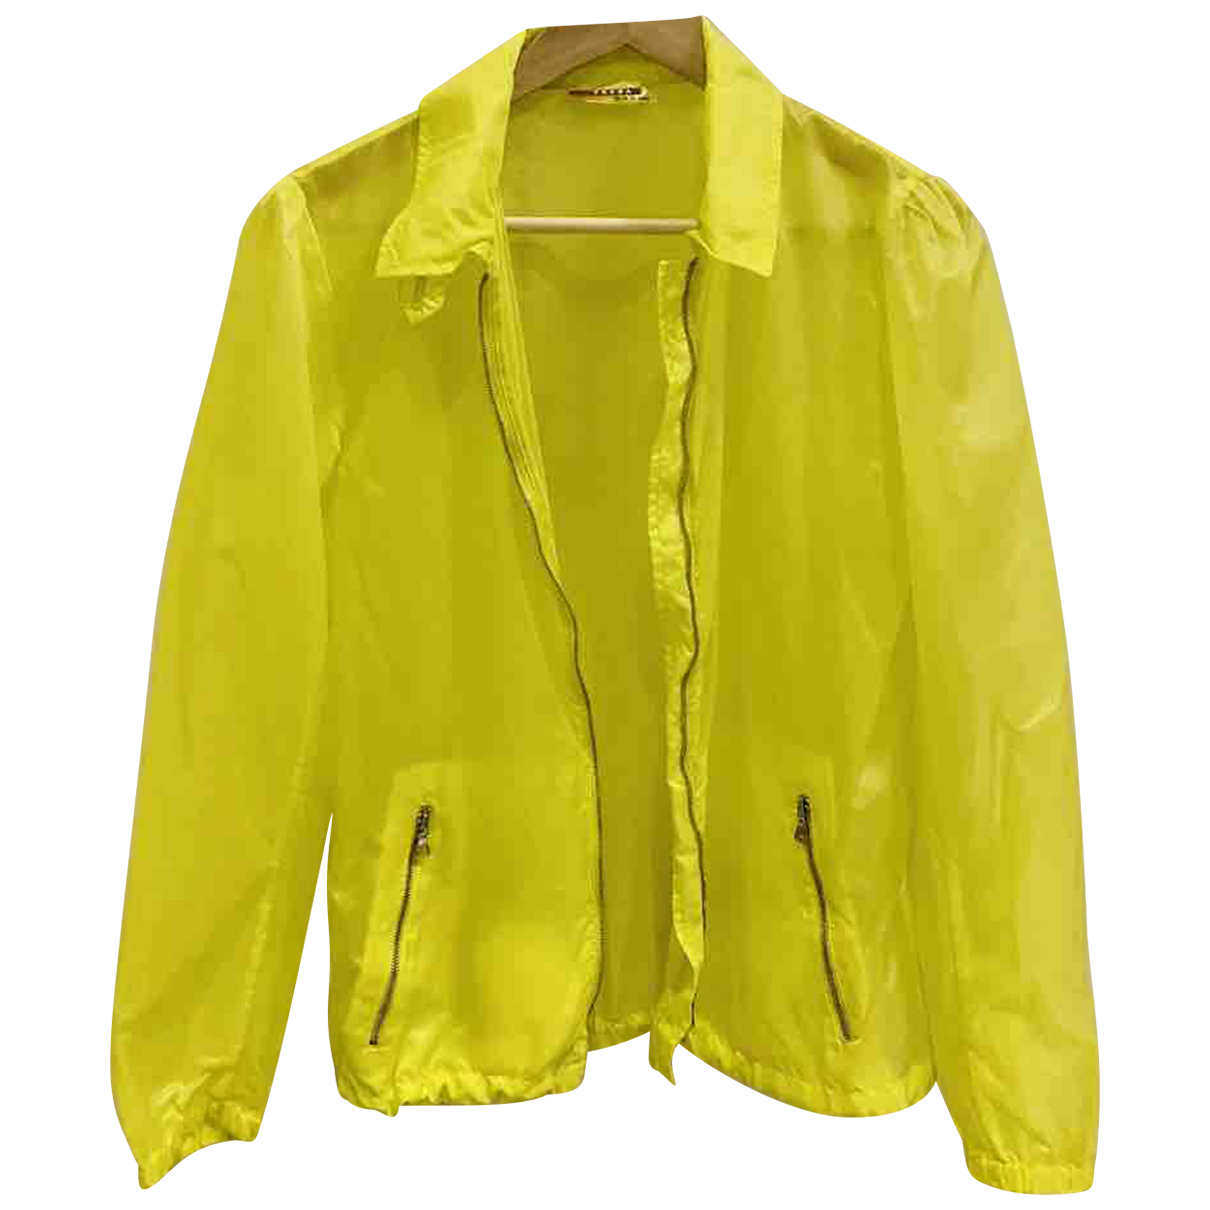 Prada \N Yellow jacket for Women 42 IT